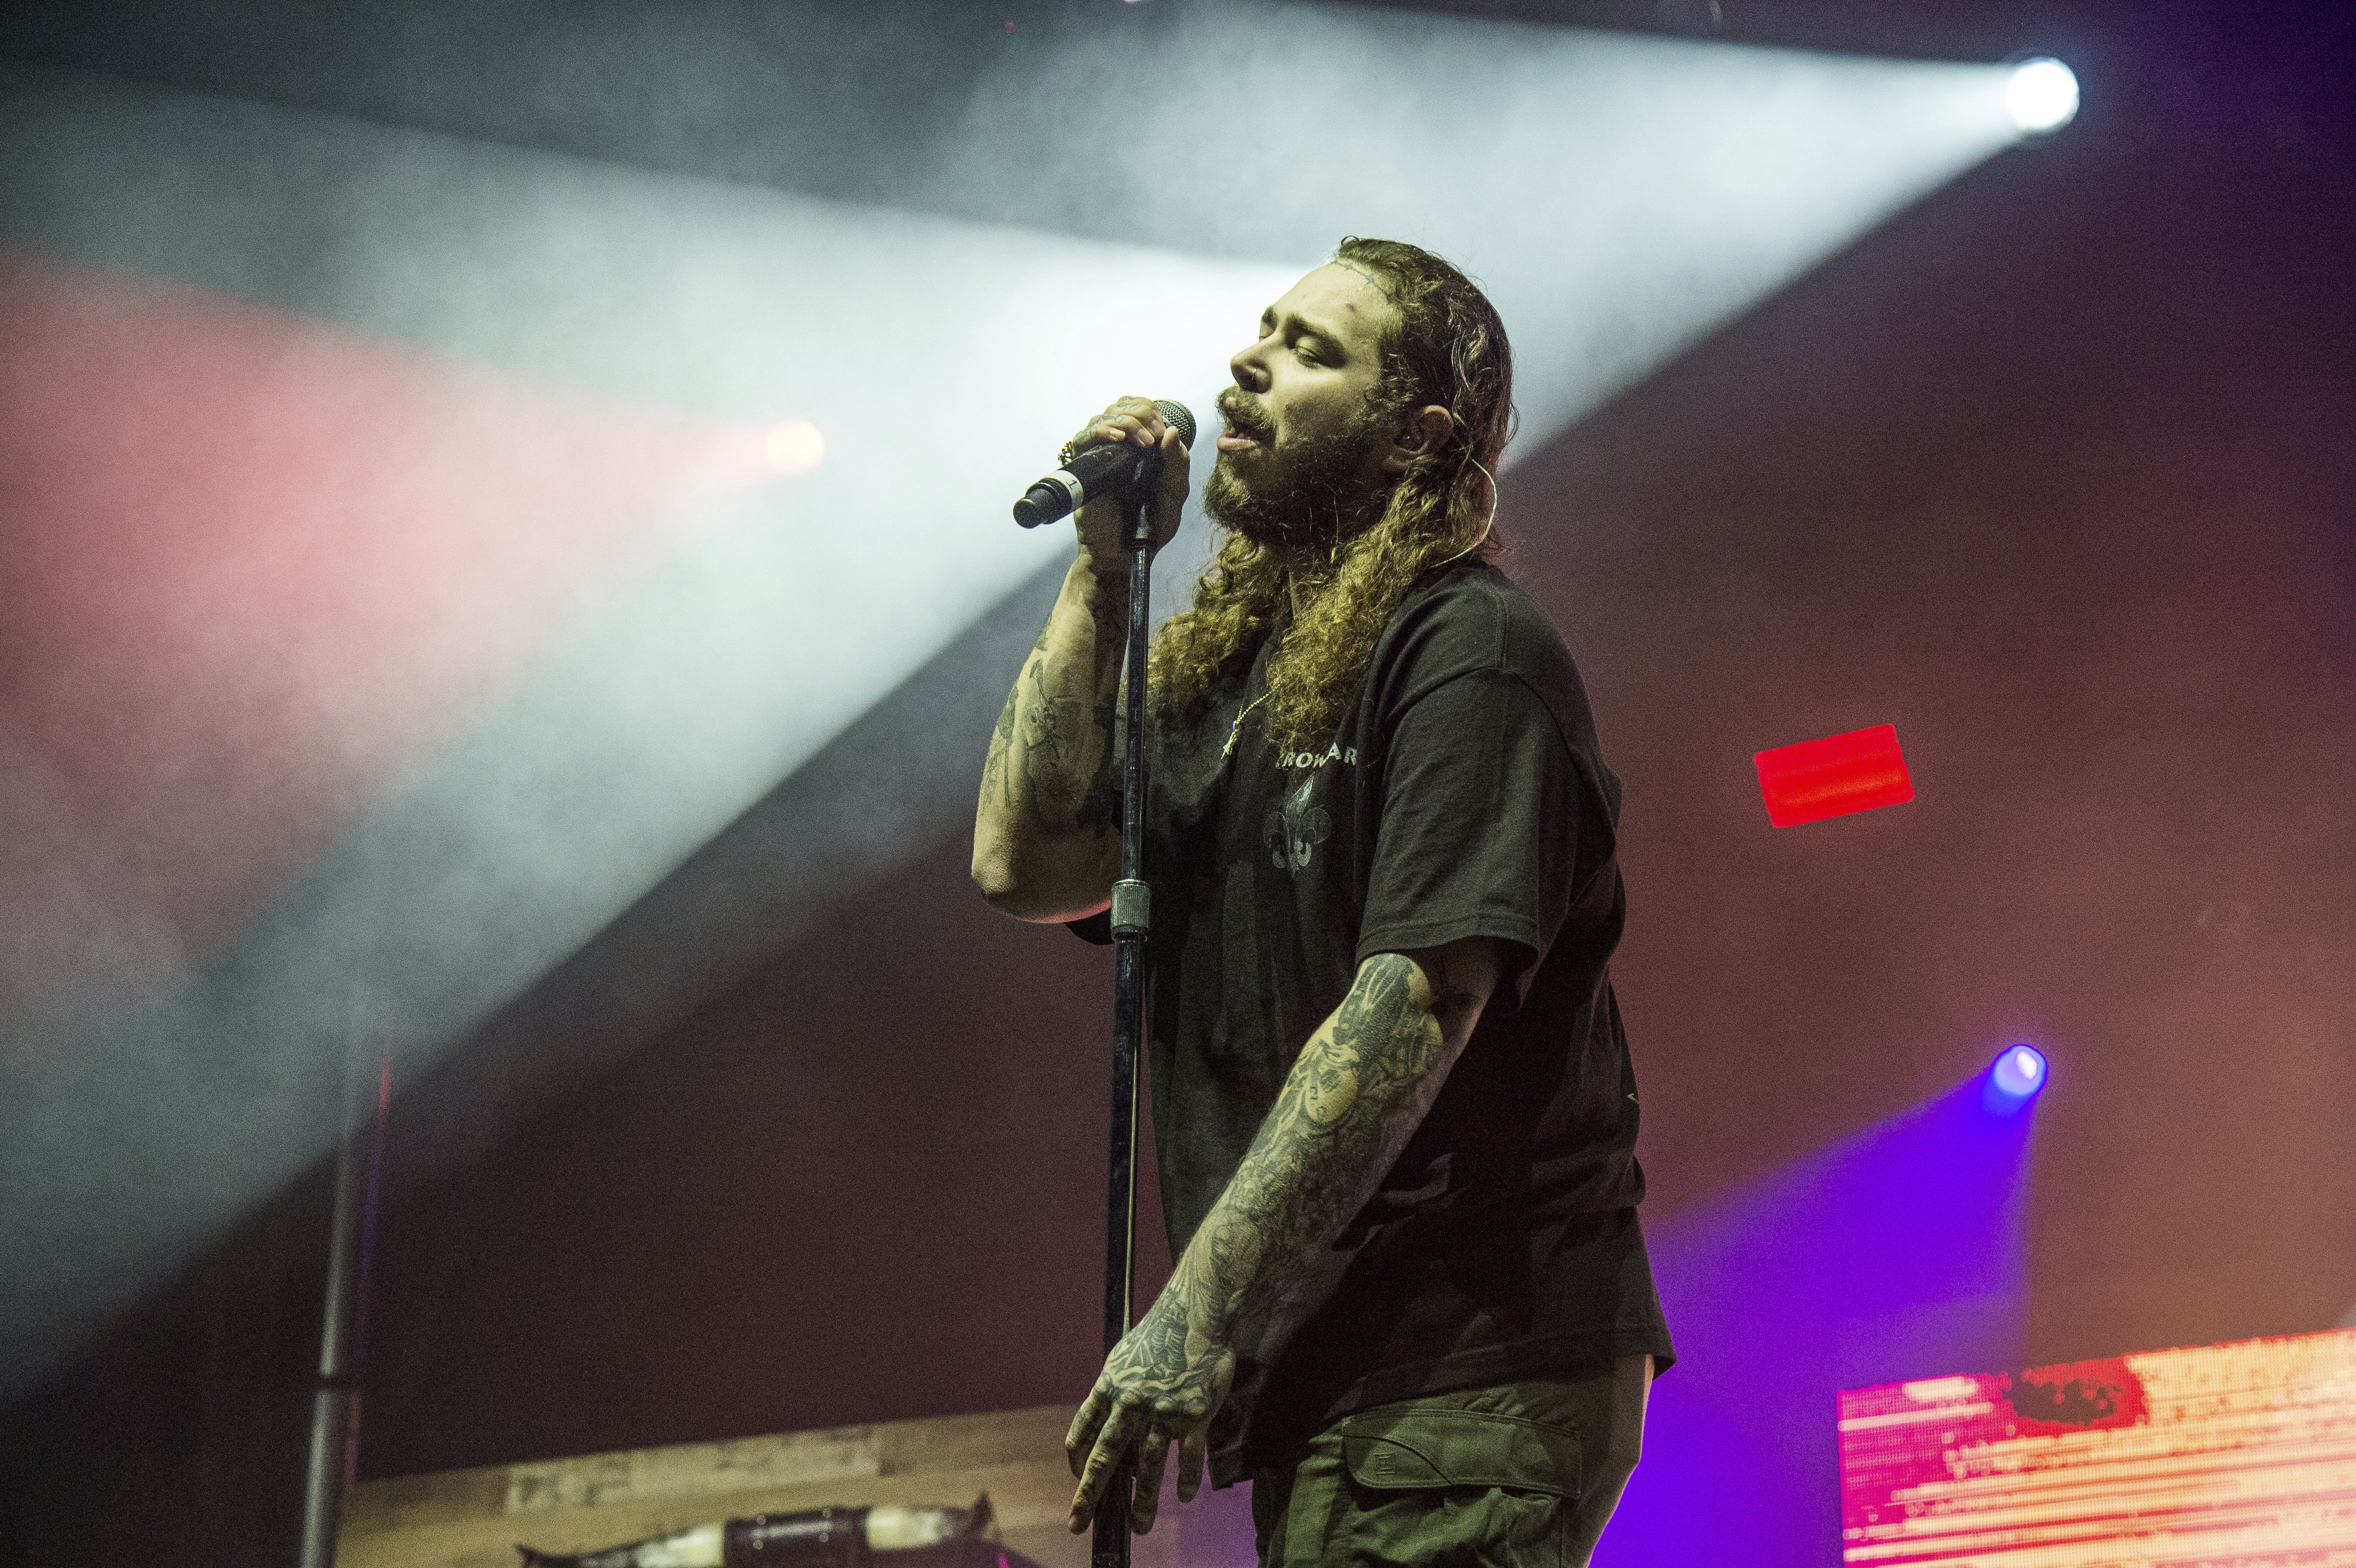 Charts: Post Malone Breaks Streaming Record With 'Beerbongs